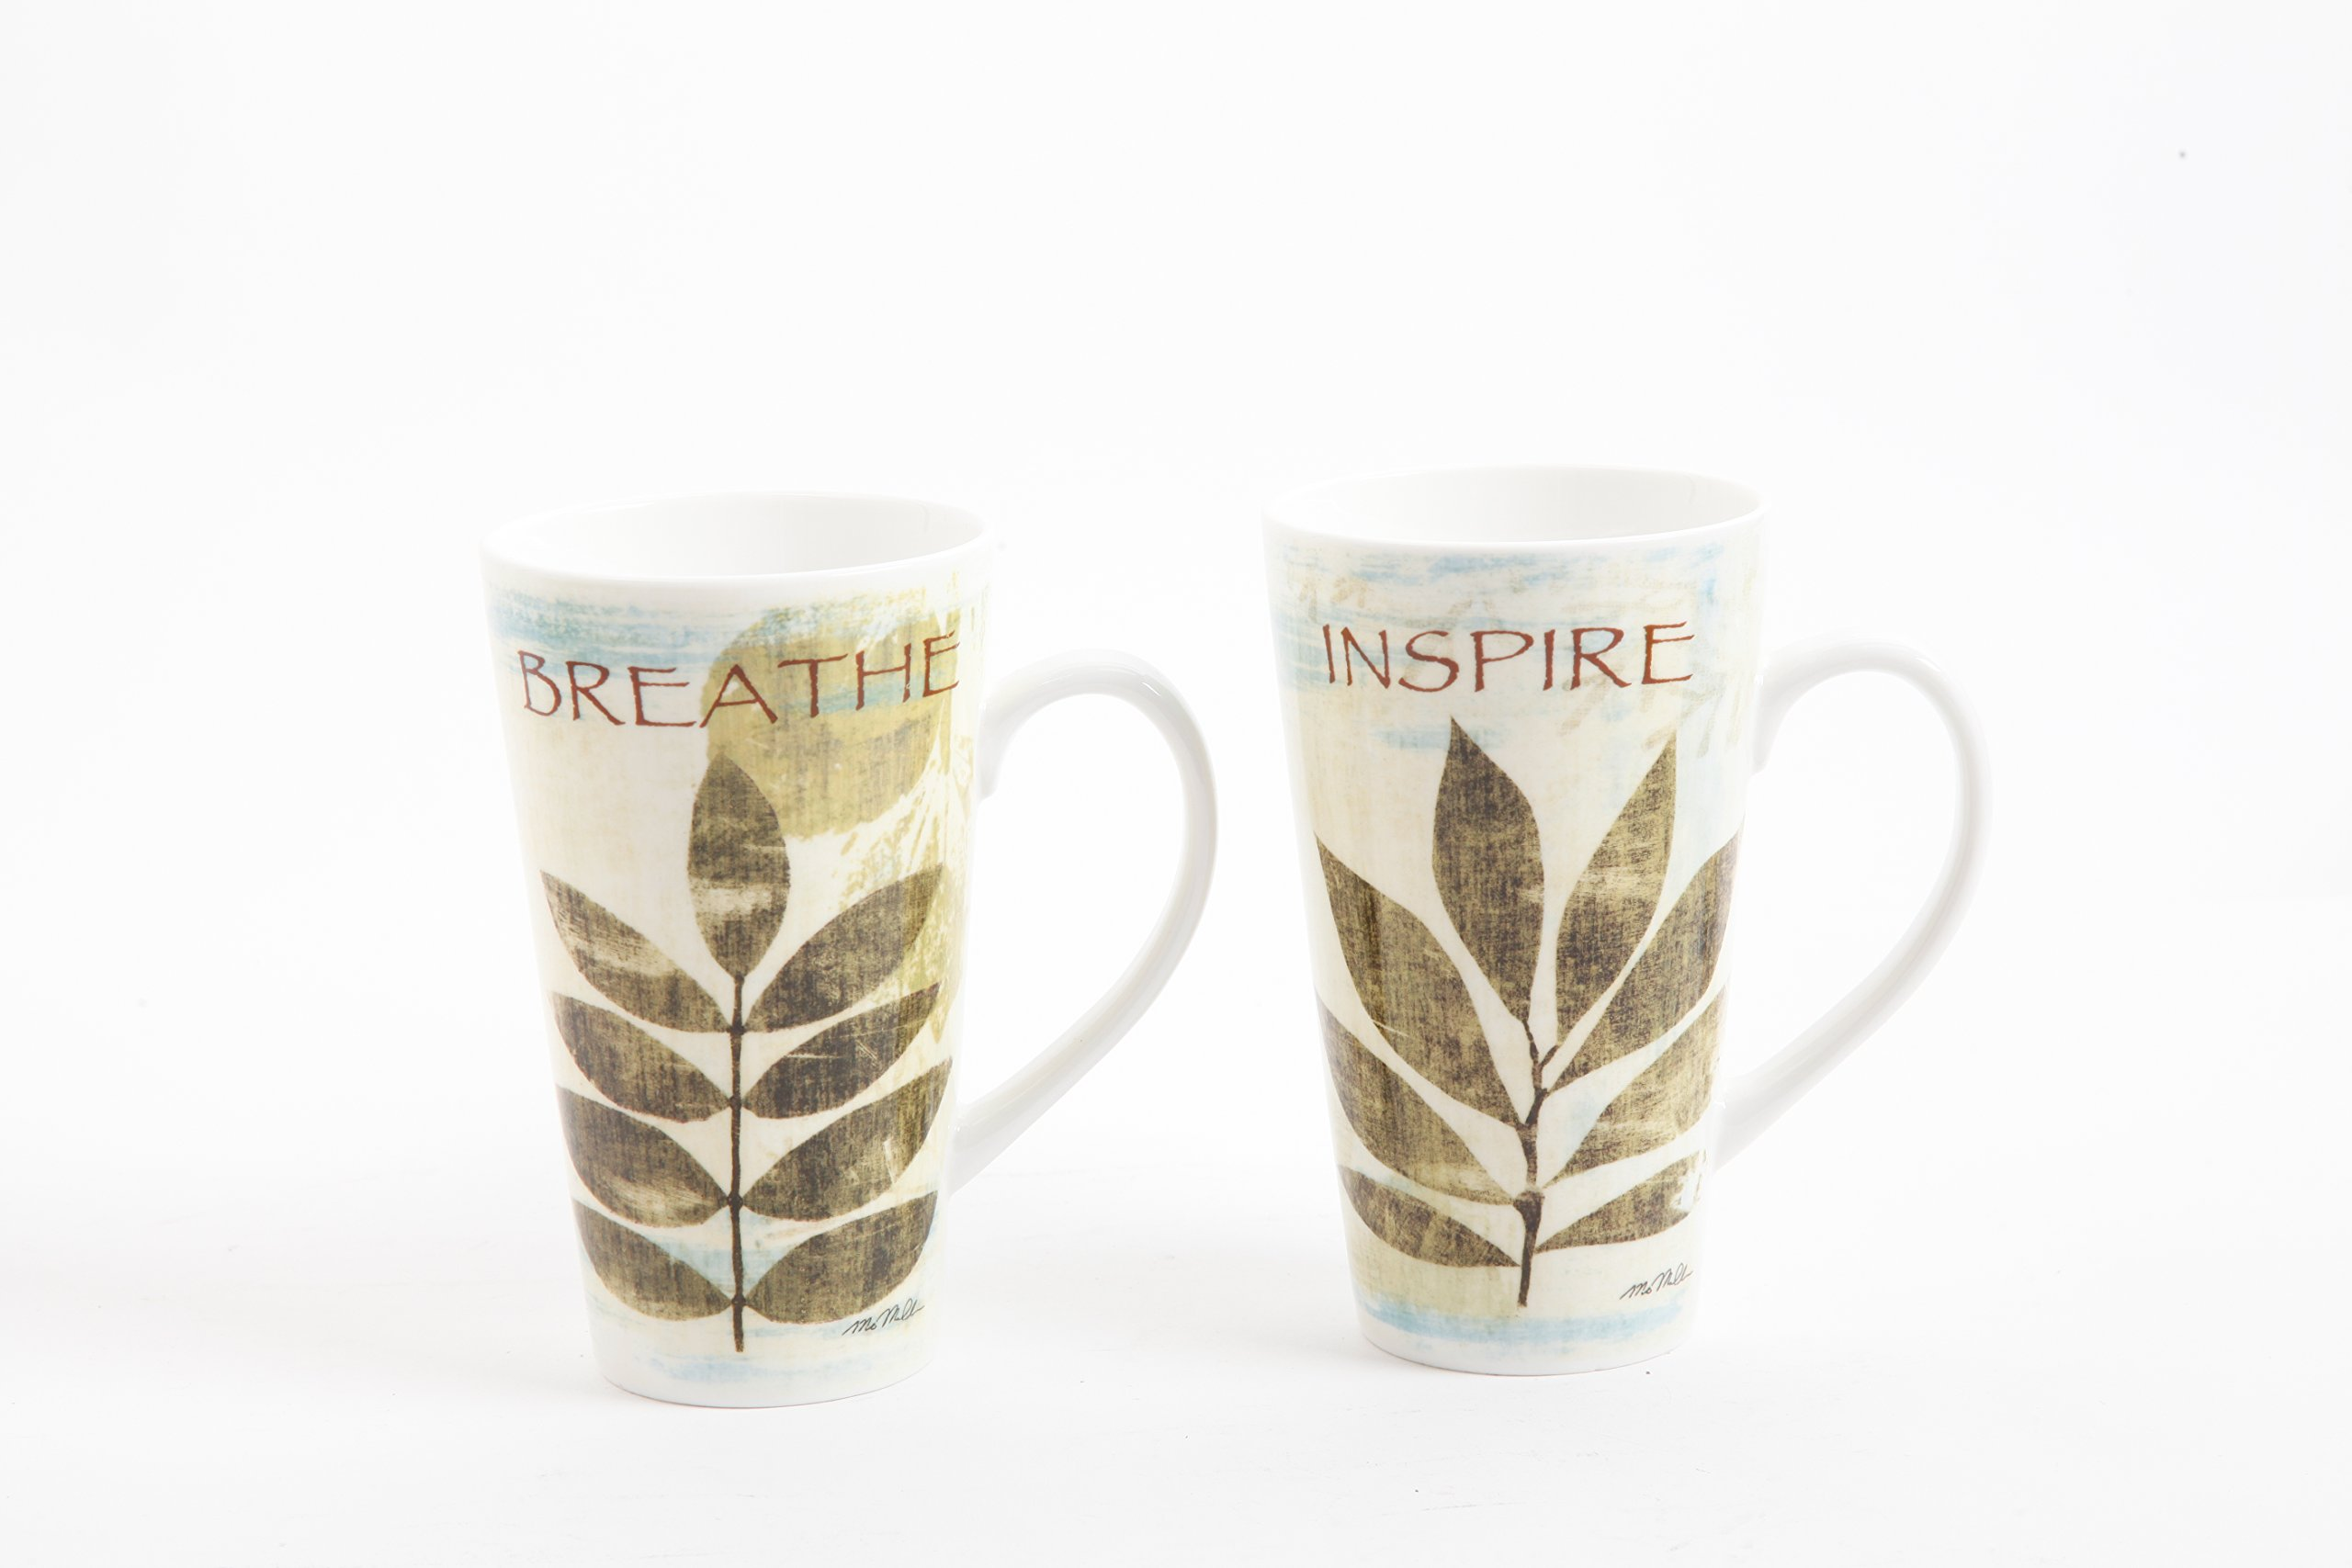 Gibson Home 92977.02RM Nature Pressed 2 Piece, 16 Ounce Breath and Inspire Mugs, Multicolor